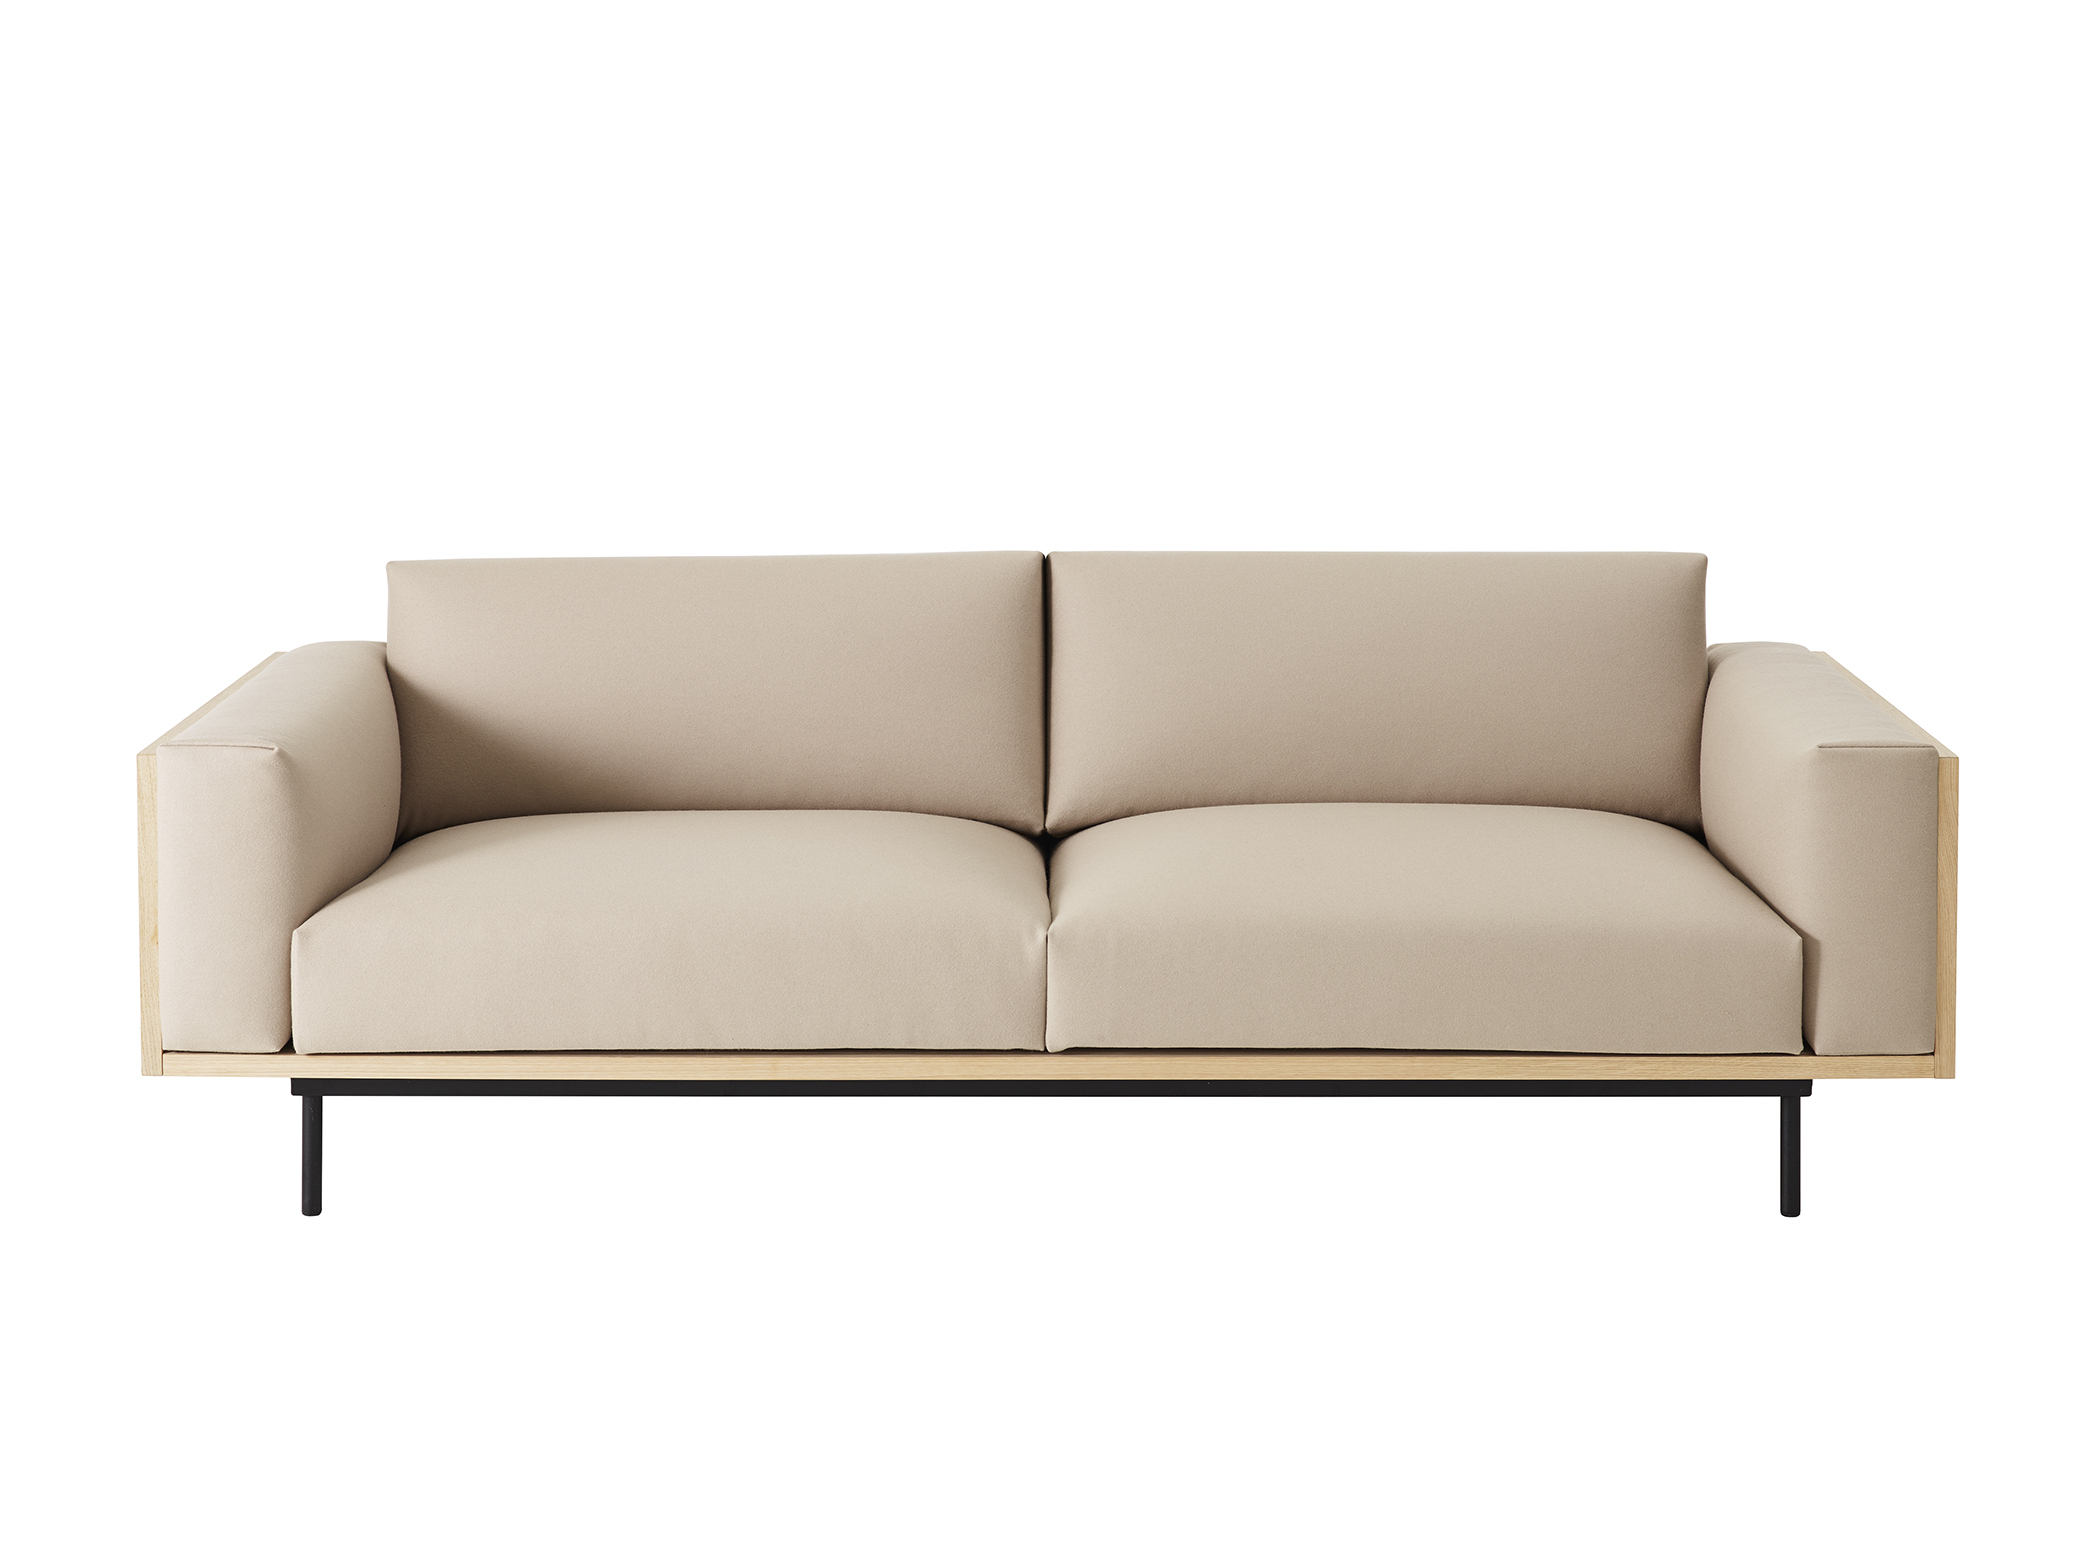 Wood sofa for Swedese - Exhibiting at Swedese, Milan Furniture Fair, Hall 16, Stand E26